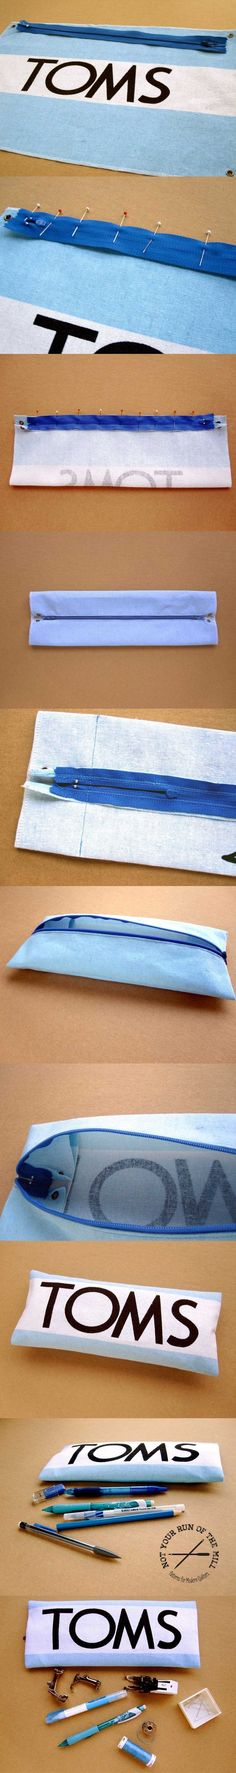 I would not use the toms bag, but this is a good tutorial for turning anything into a pouch